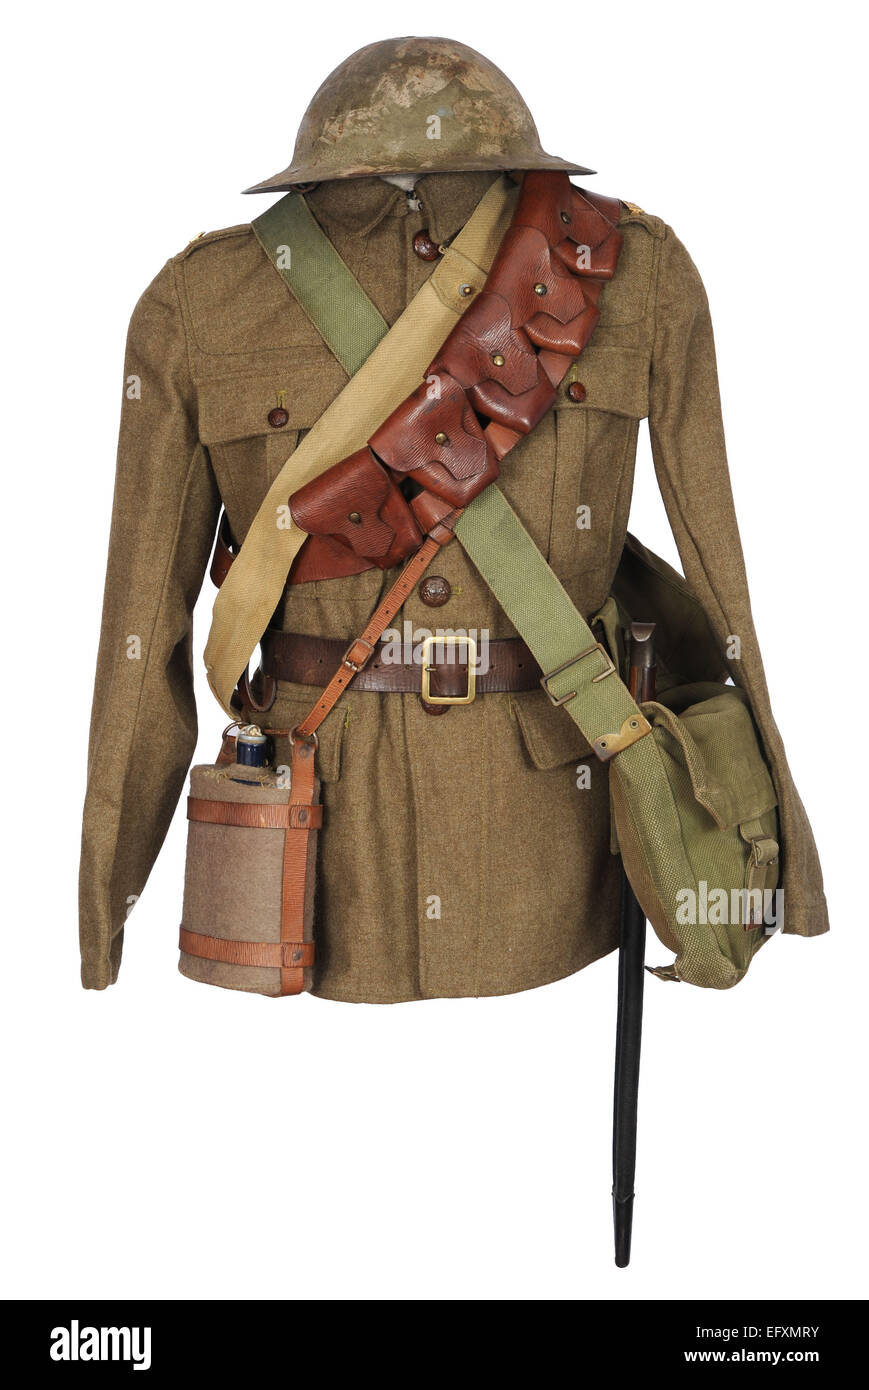 Tunic and equipment as used by British cavalry soldiers during the last two years of the Great War. WW1. - Stock Image